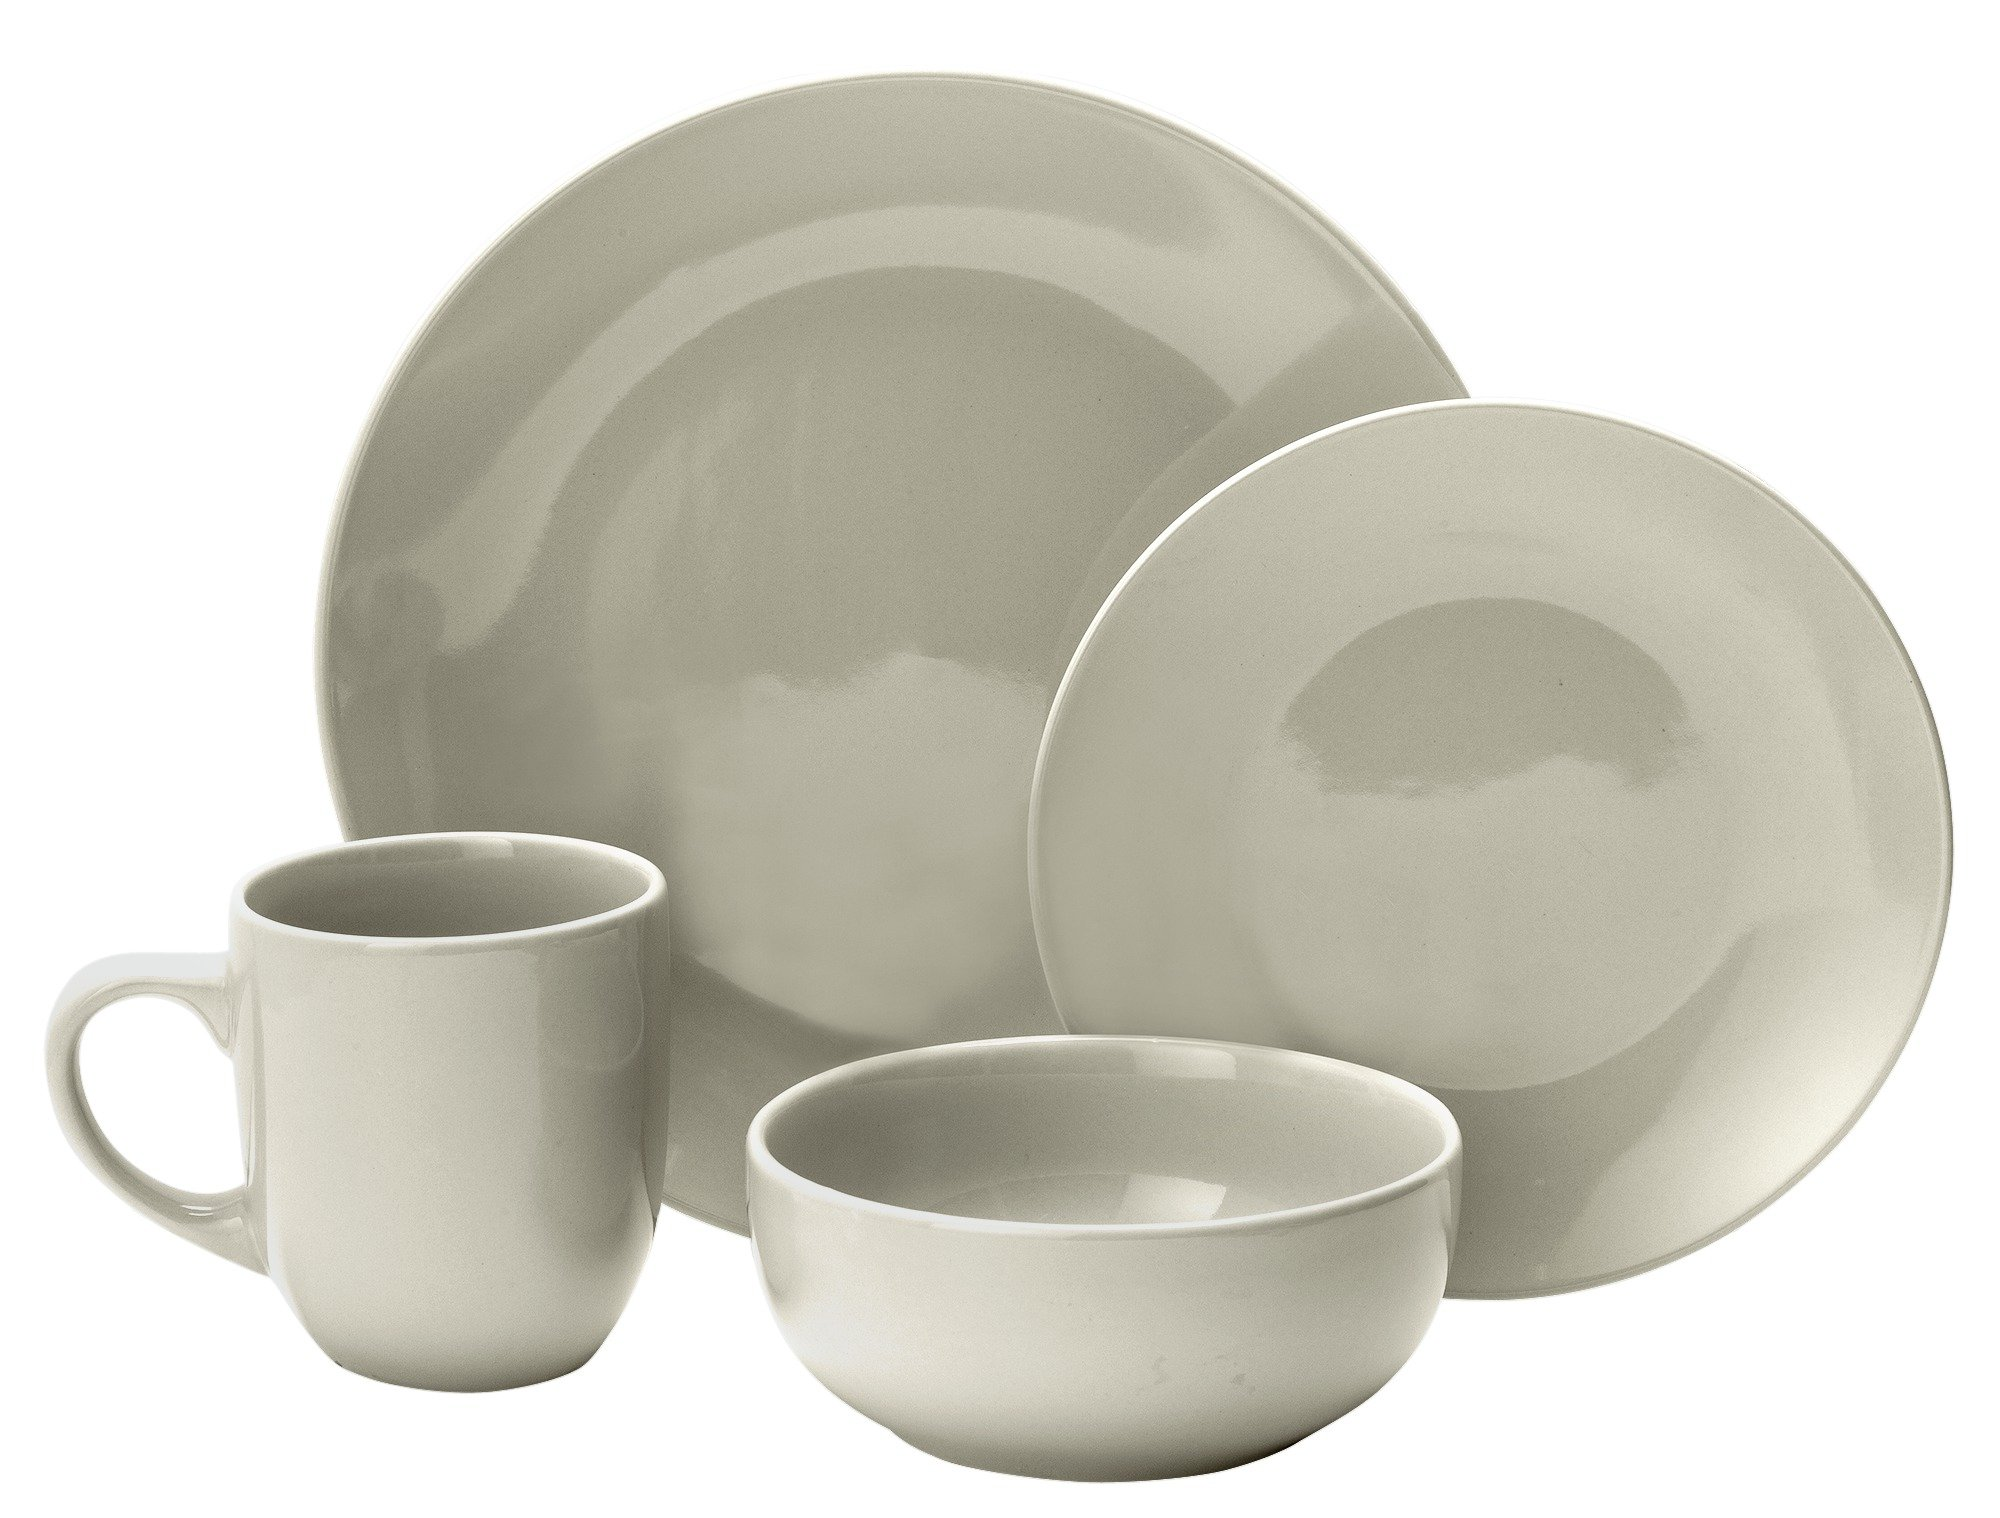 Image of Collection - Bosa 16 Piece Stoneware Dinner Set - Ash White